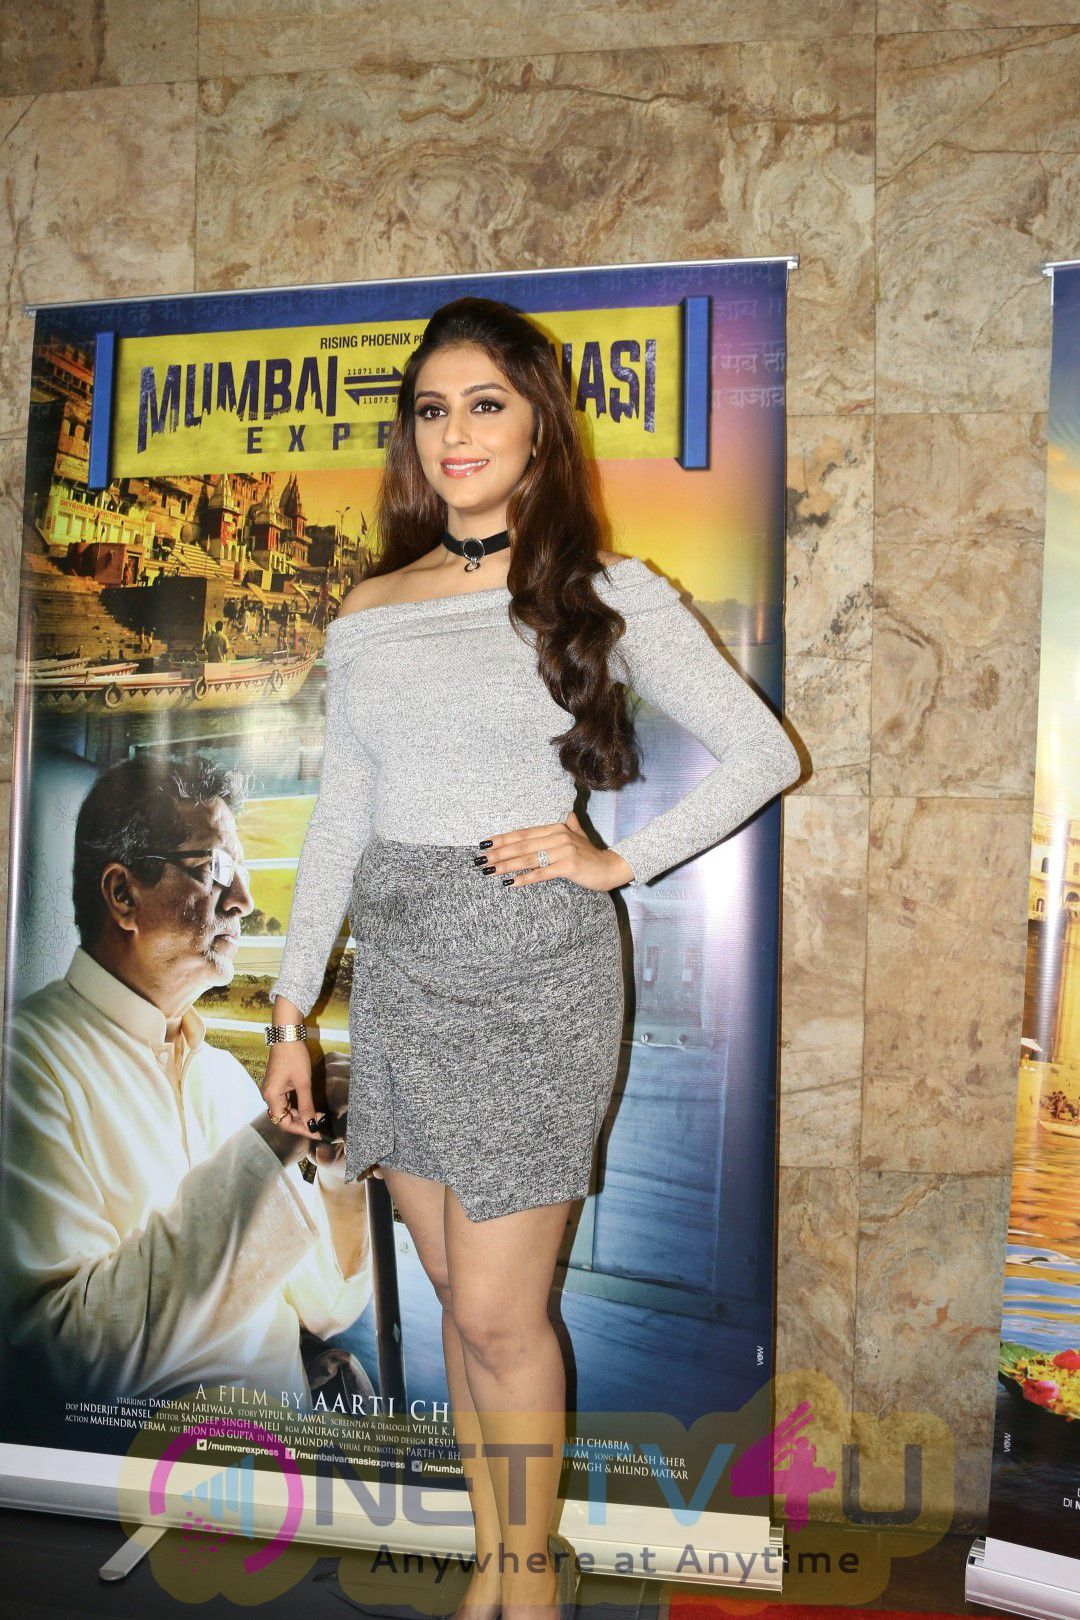 aarti chabria bh